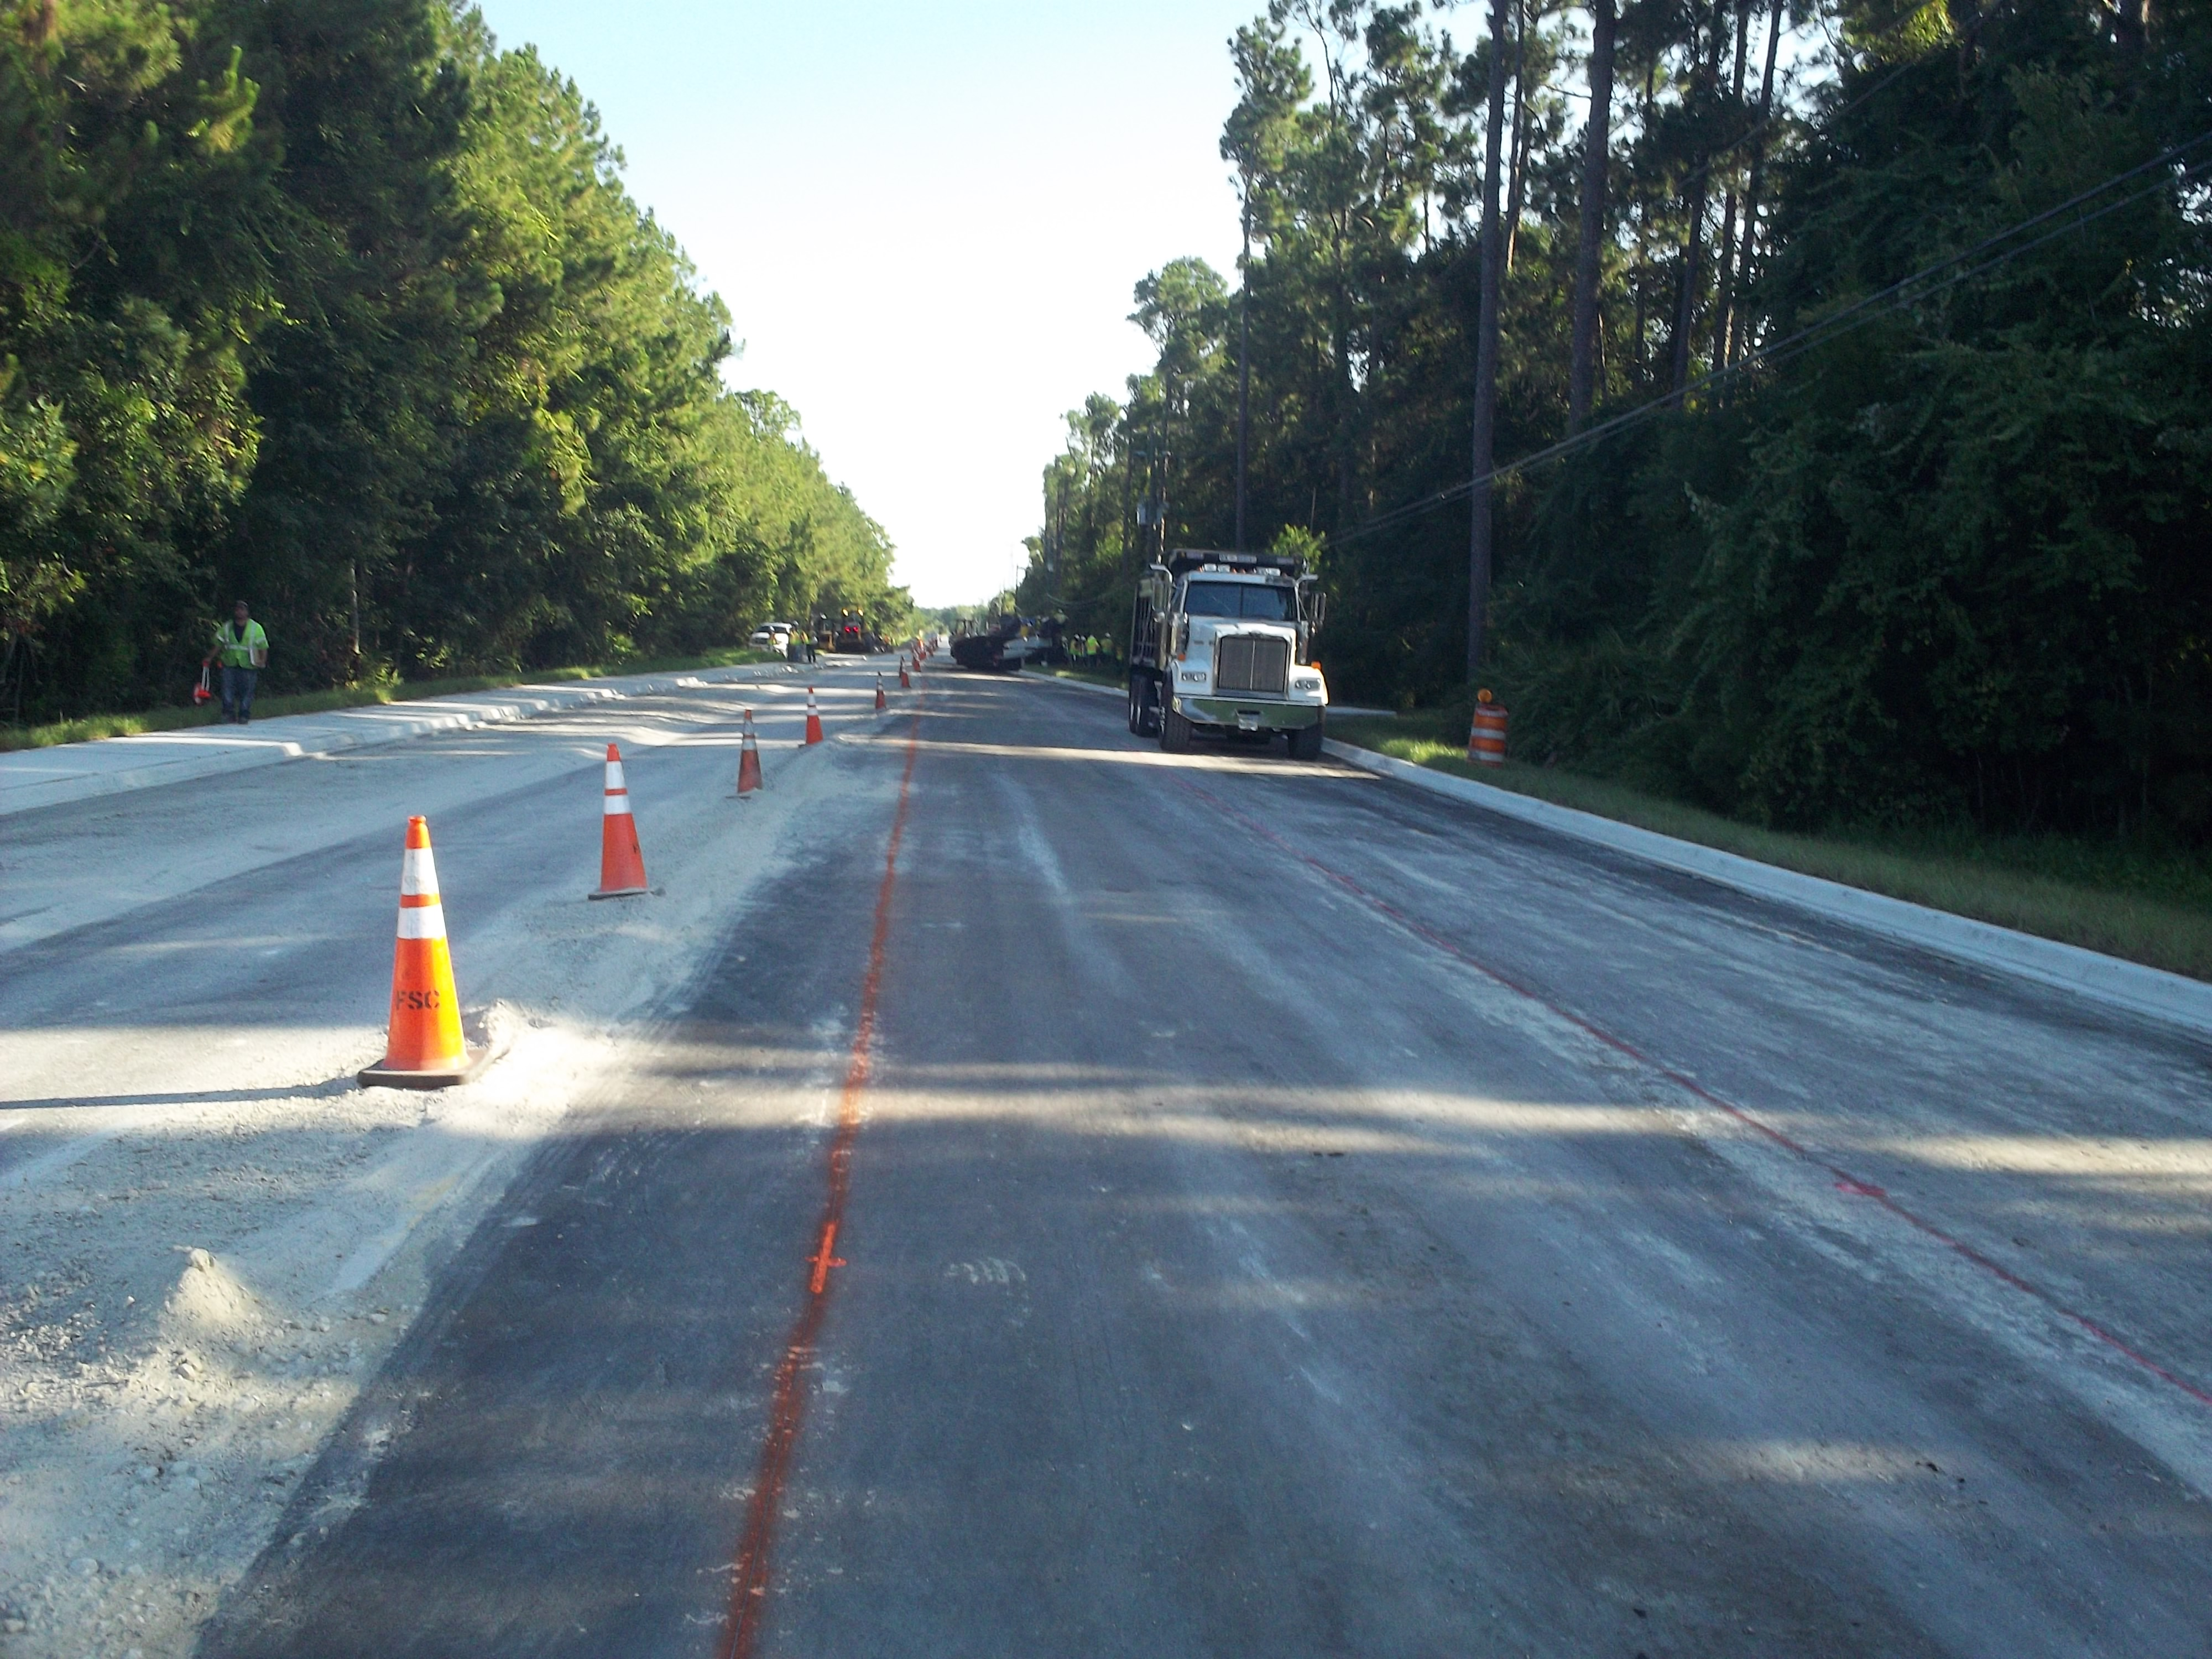 Roadway construction on Inman Road, showing the trucks, dirt , and cones of the road in progress